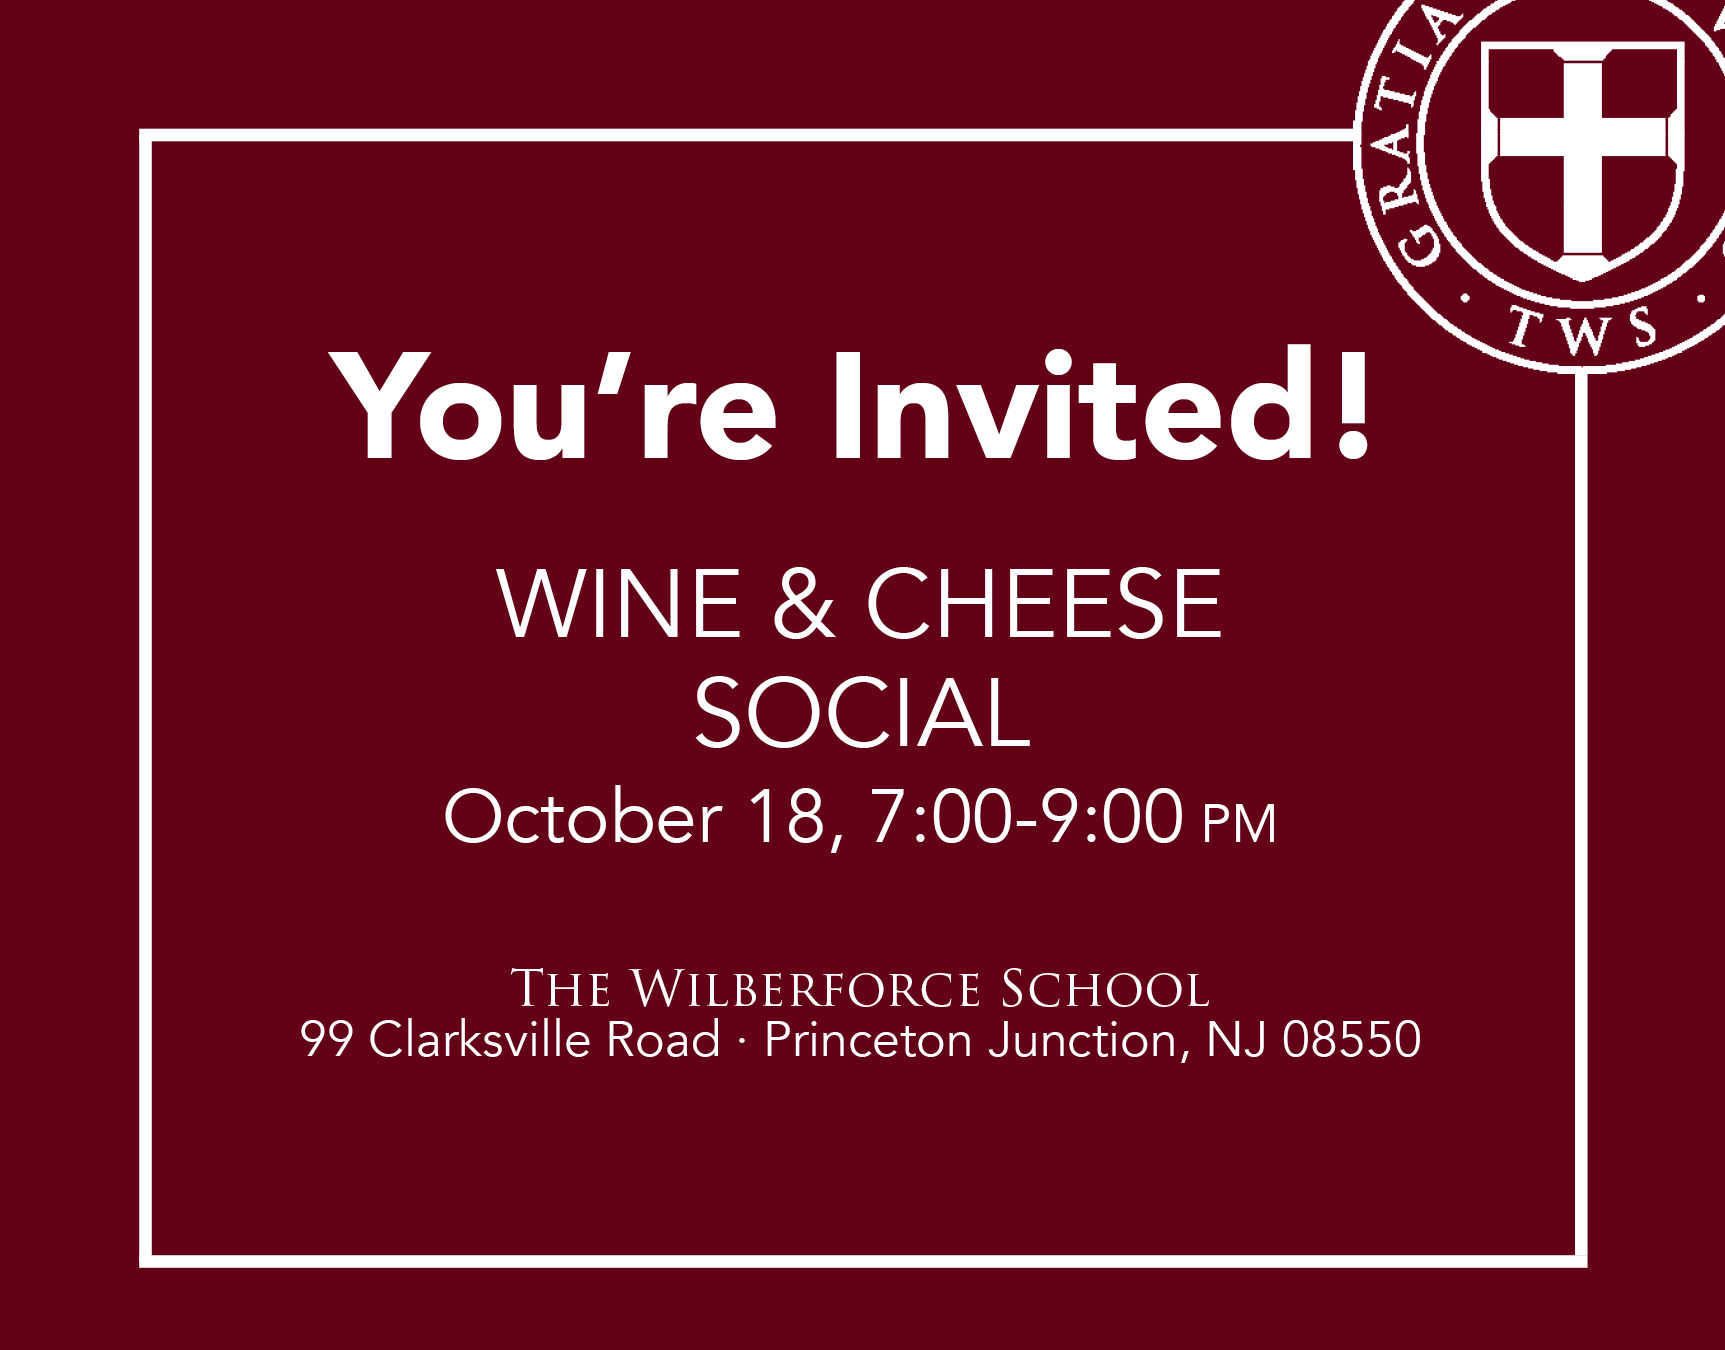 Invite a friend to our Wine & Cheese Social and Open House. RSVP here.